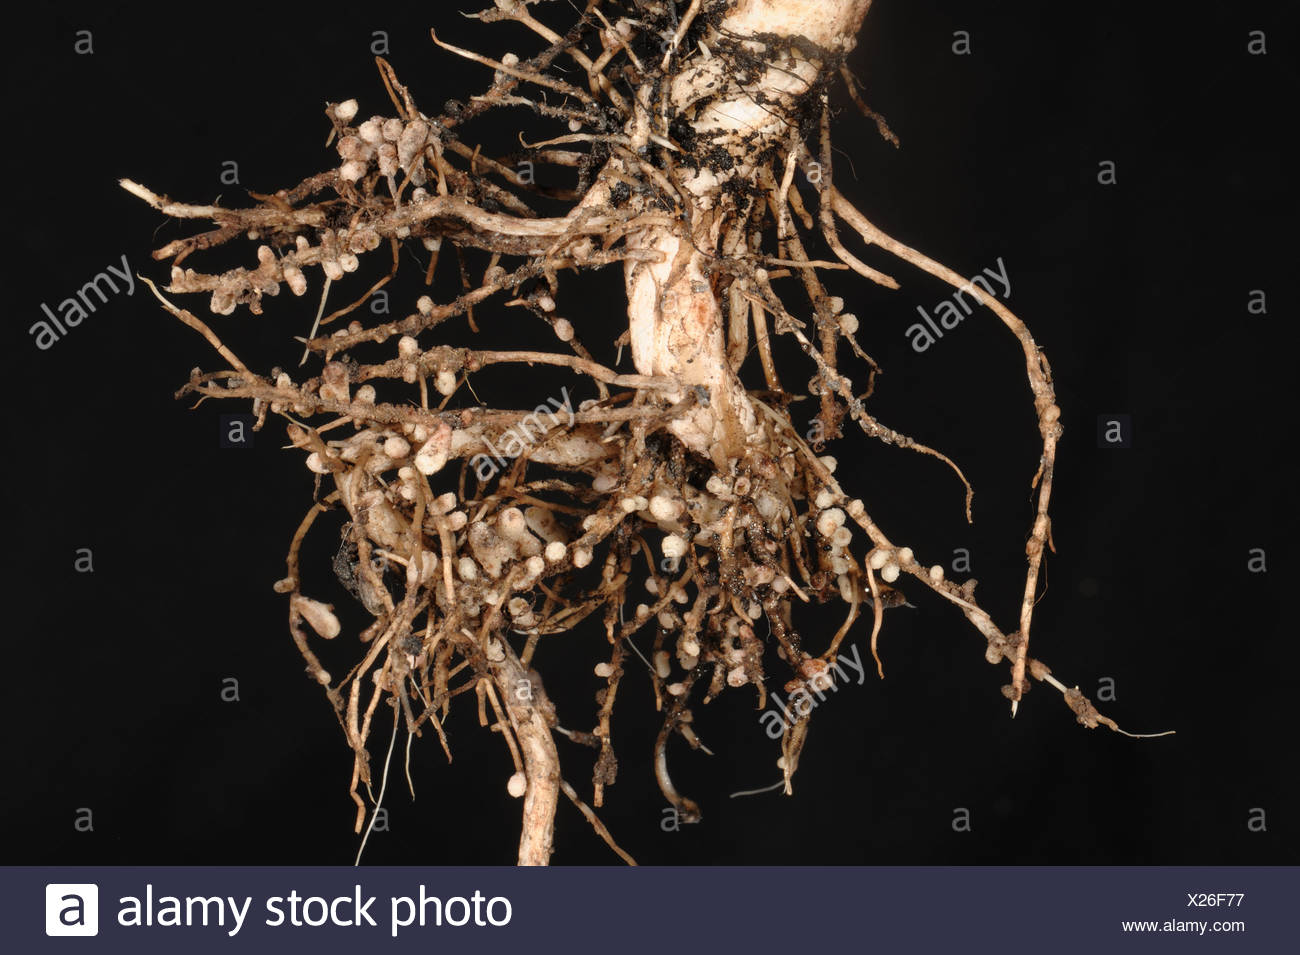 Rhizobium root nodules on the roots of a broad or field bean for nitrogen fixation - Stock Image